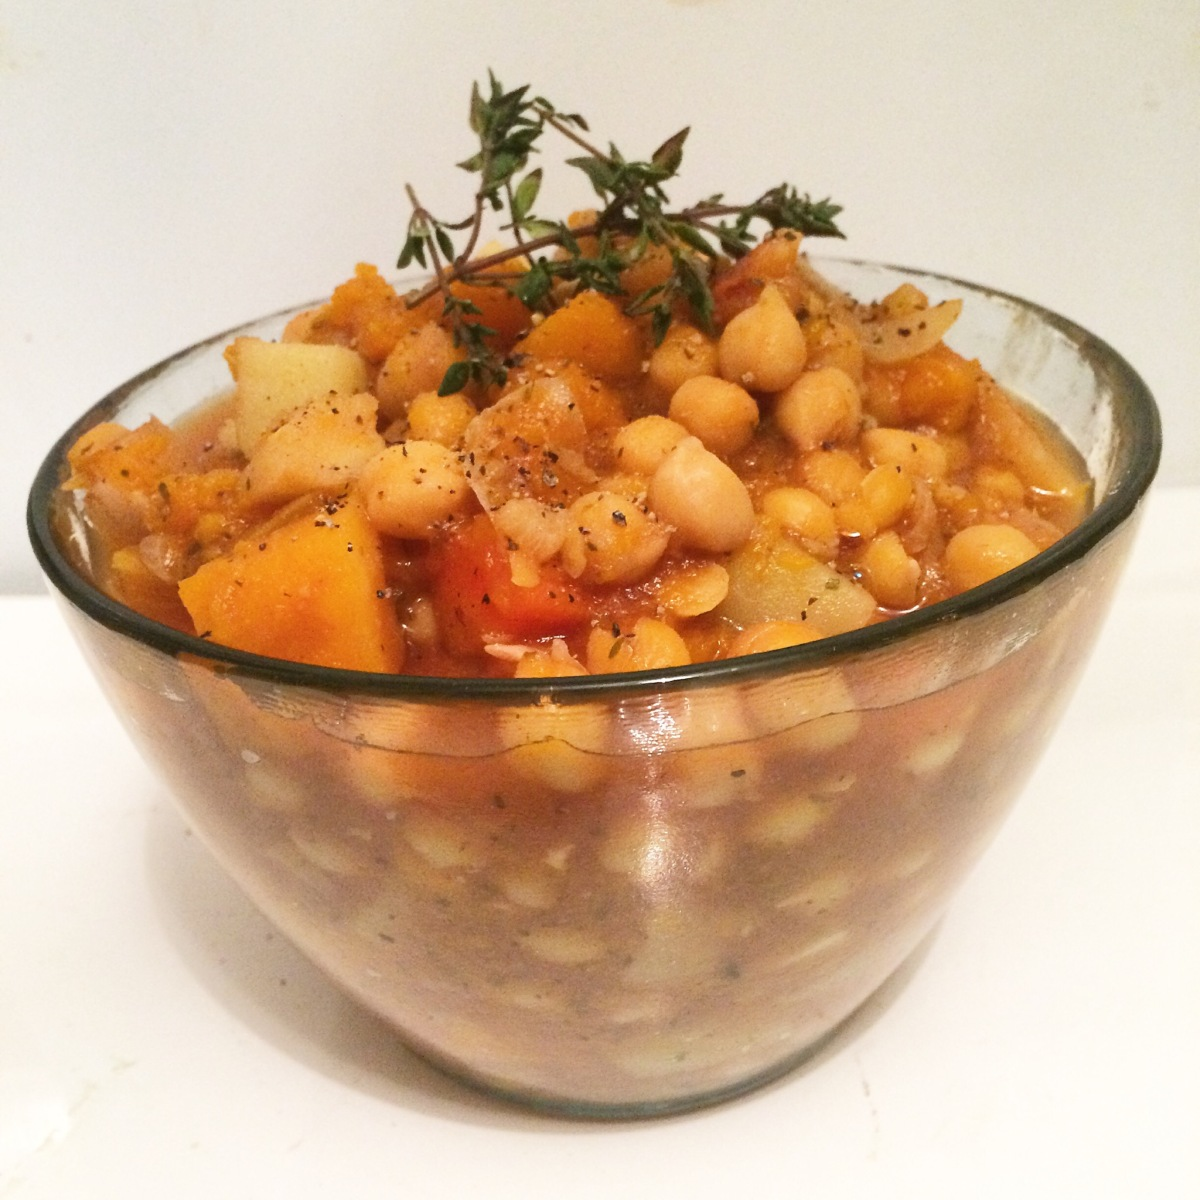 Chickpea and Squash Stew | Just Ate Vegan